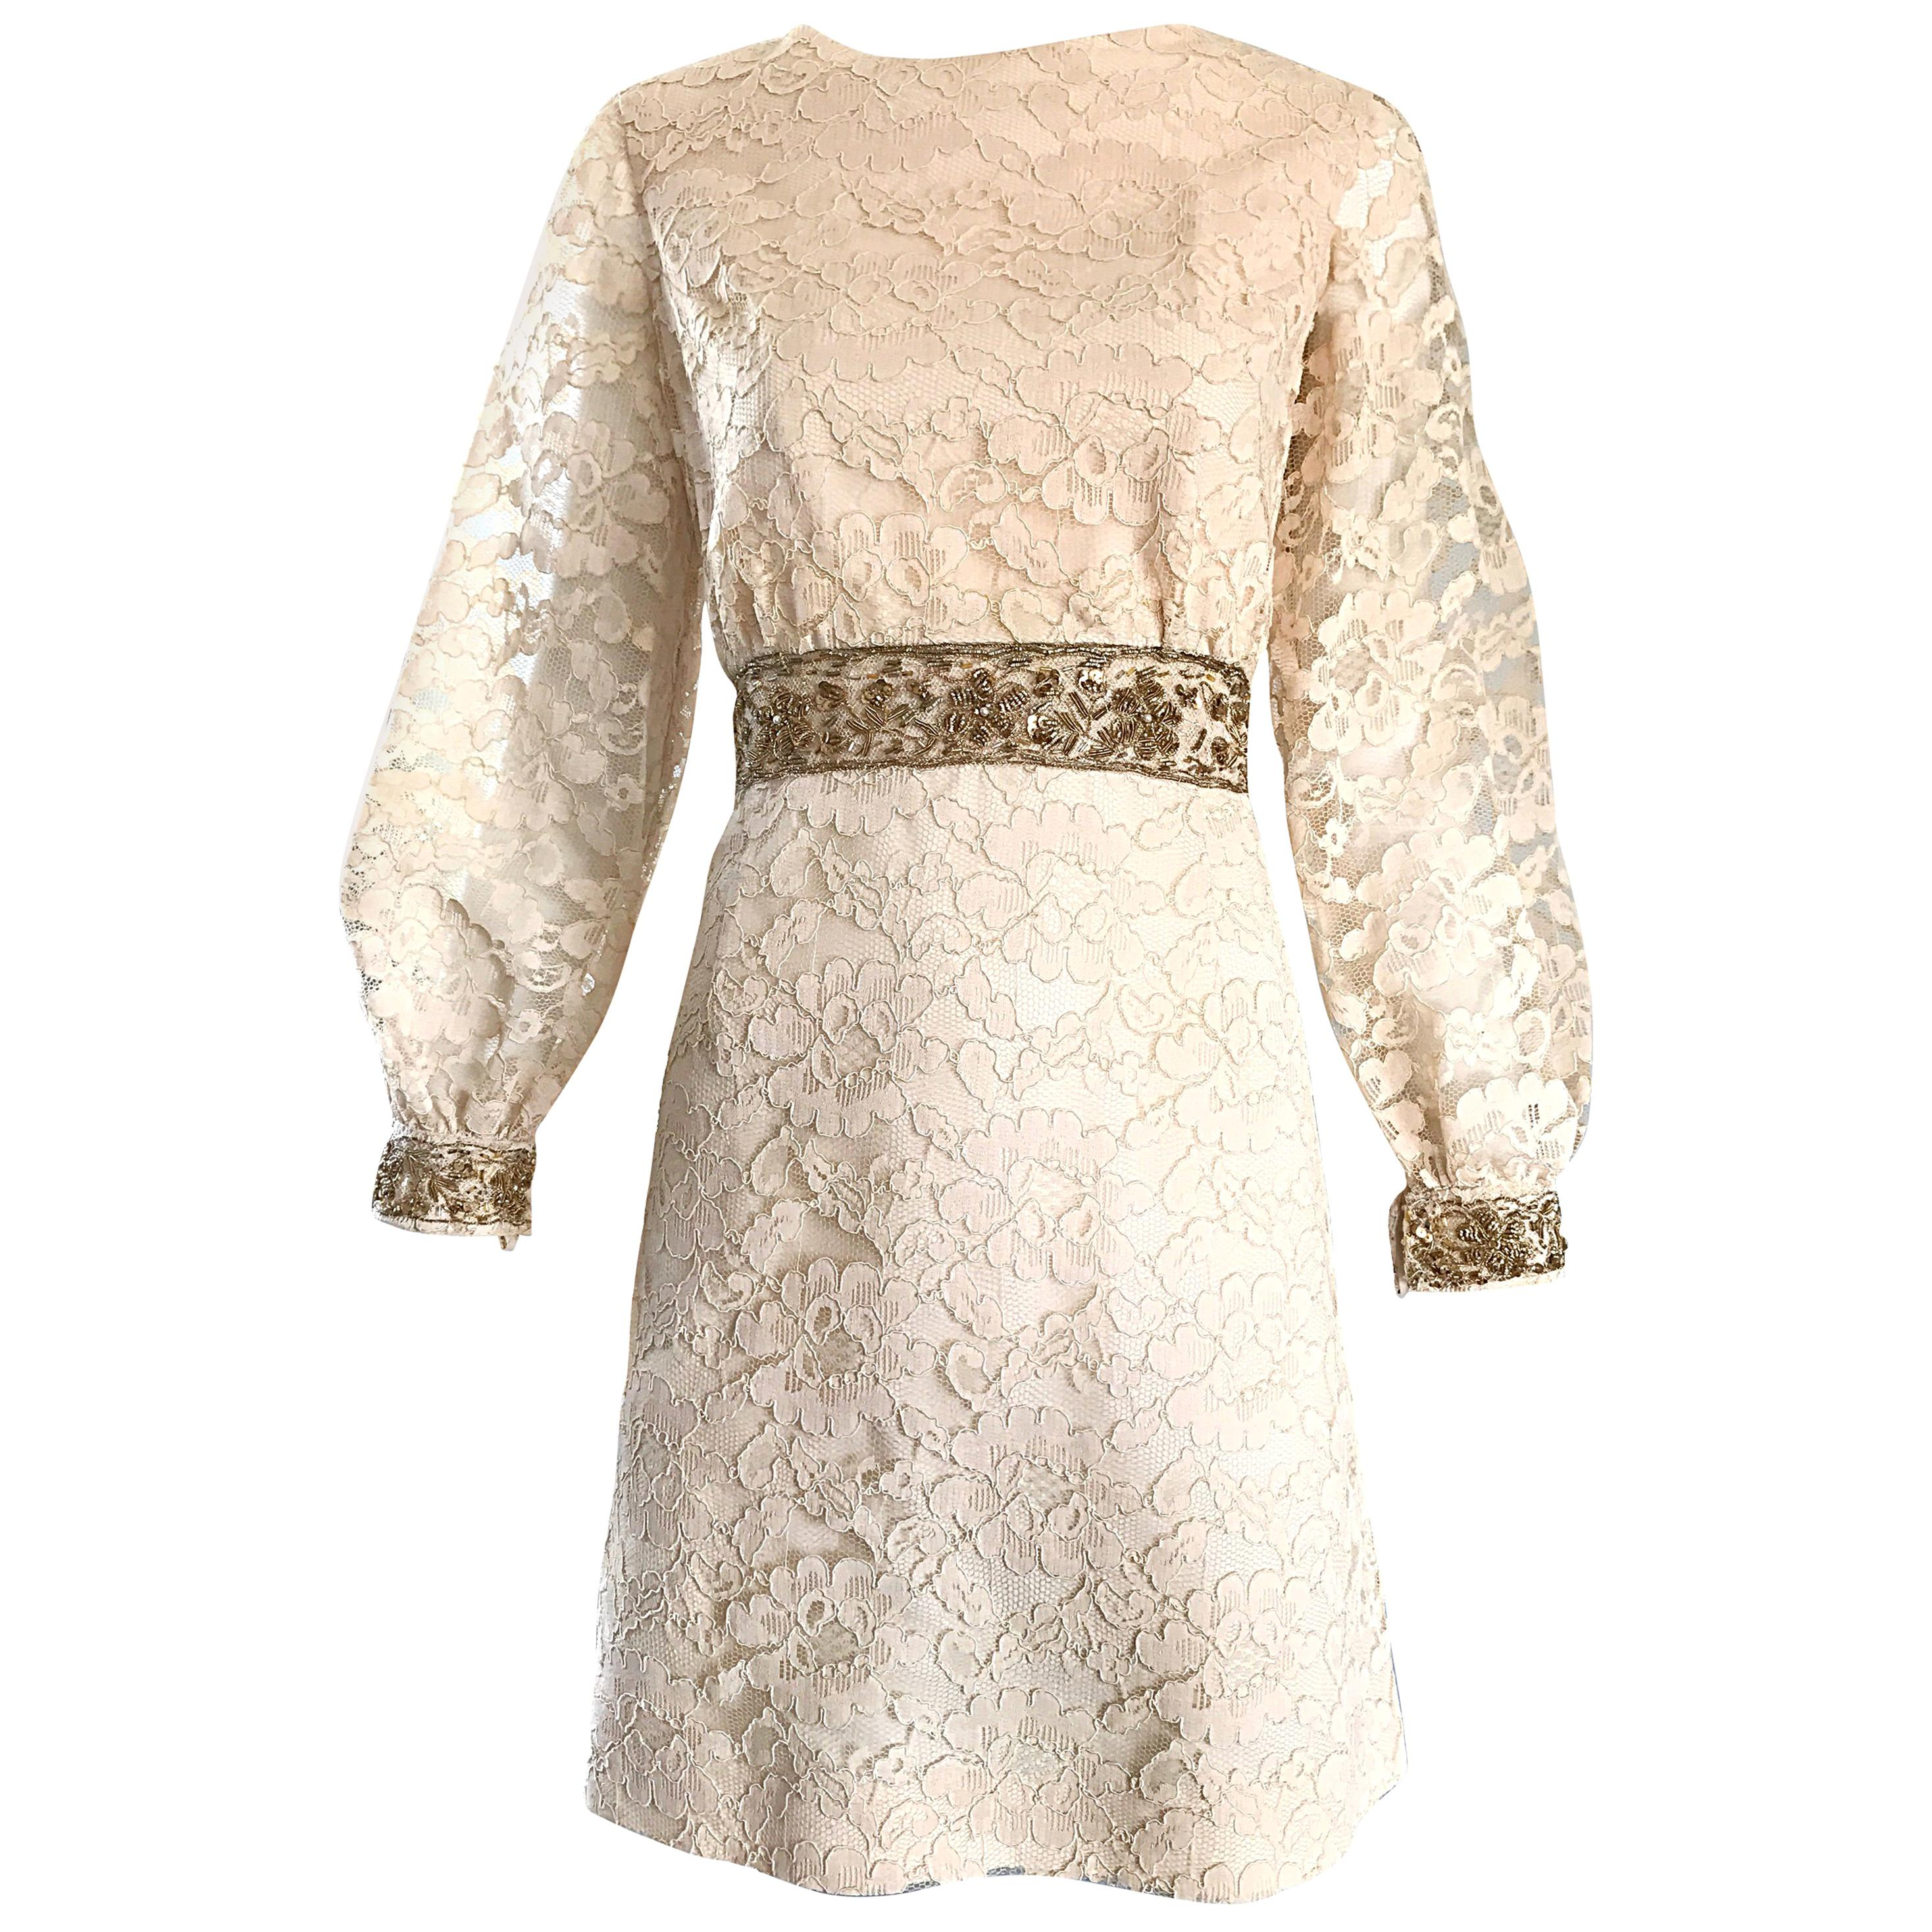 1960s Ivory and Gold Lace + Sequins Mod Vintage A - Line 60s Babydoll Dress